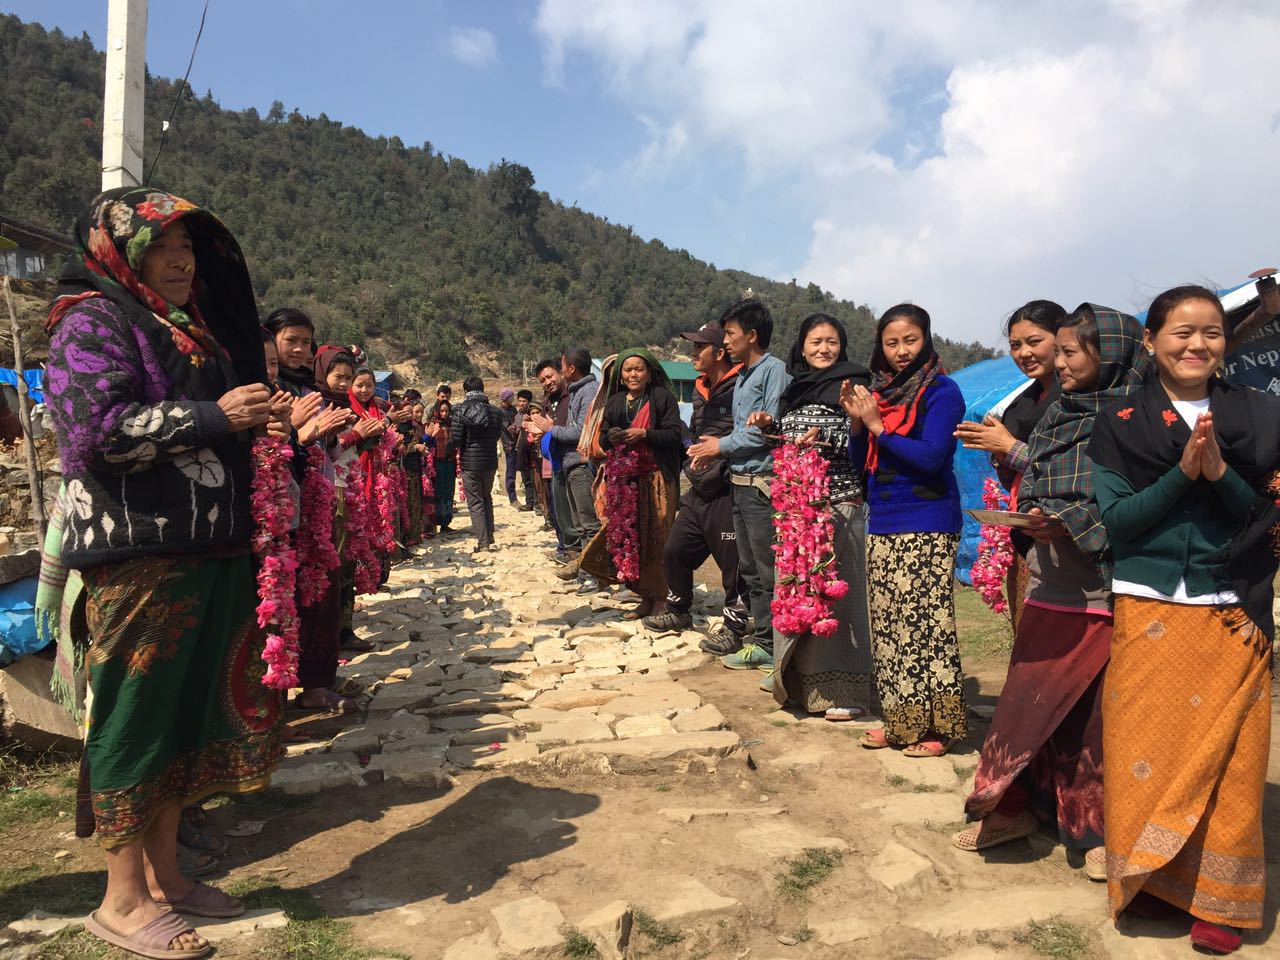 A rousing welcomed by the Laprak villagers.